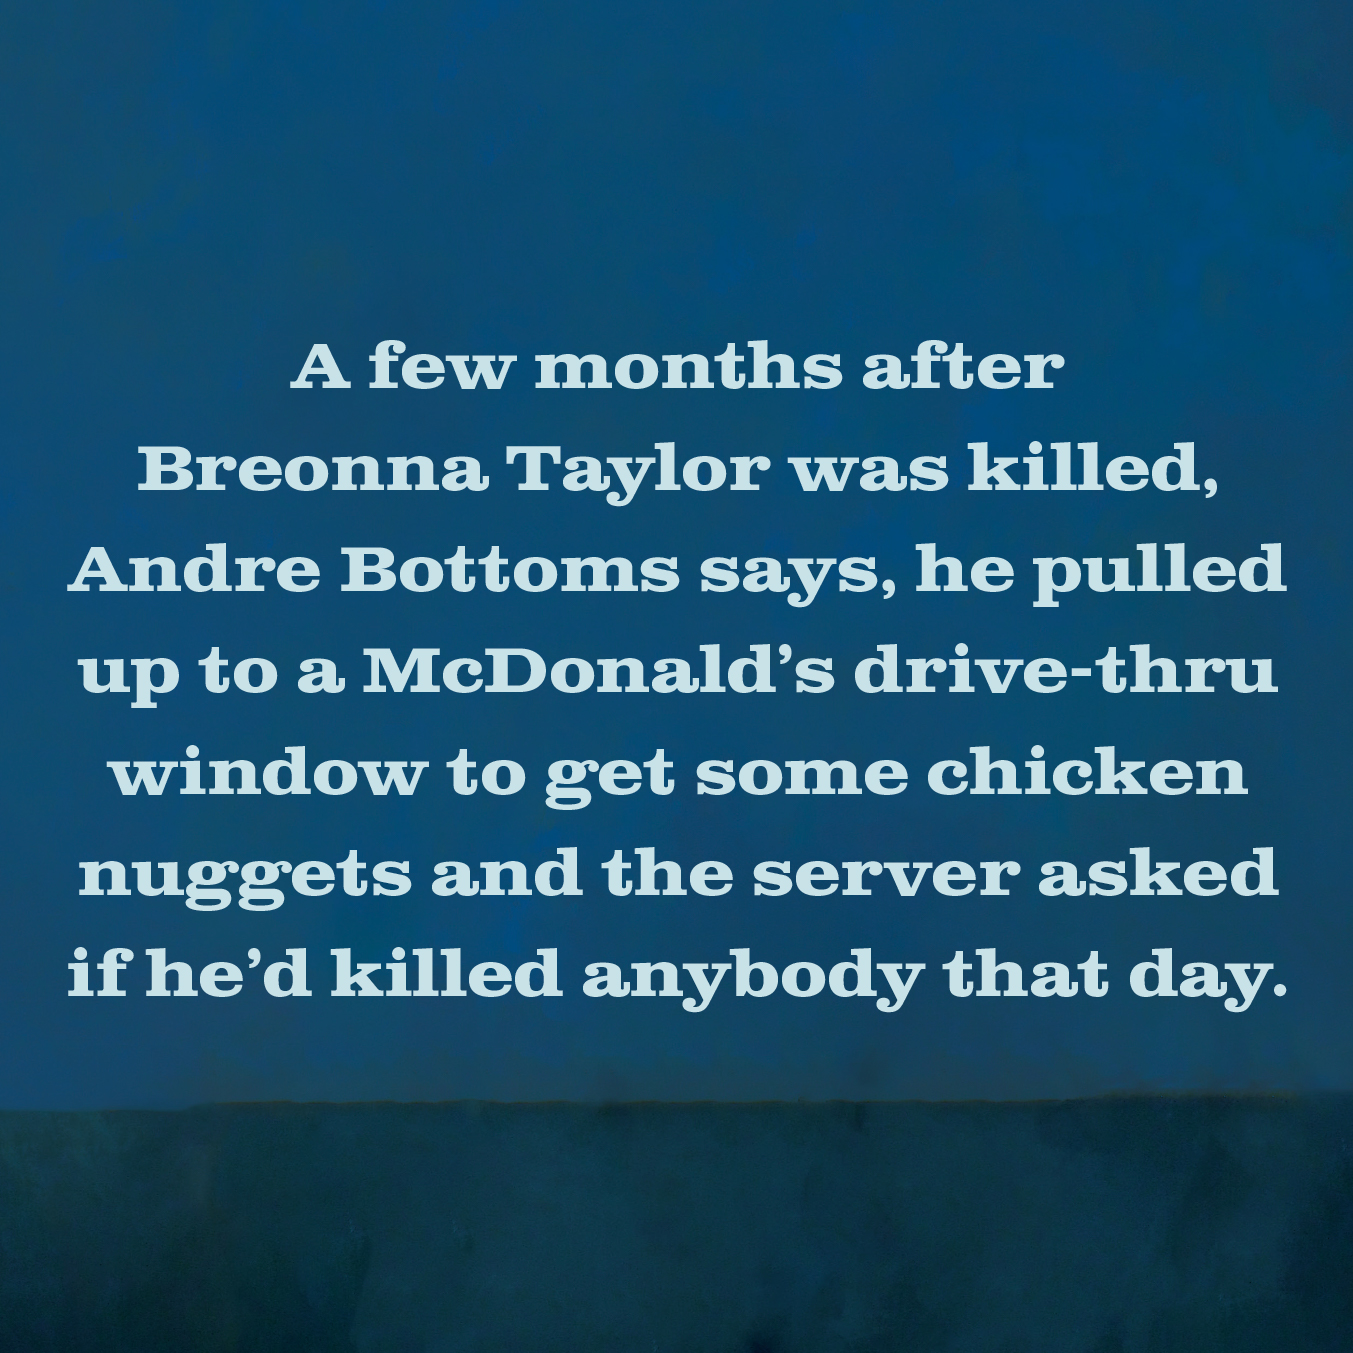 A few months after Breonna Taylor was killed, Andrew Bottoms says, he pulled up to a McDonald's drive-thru window to get some chicken nuggets and the server asked if he'd killed anybody that day.